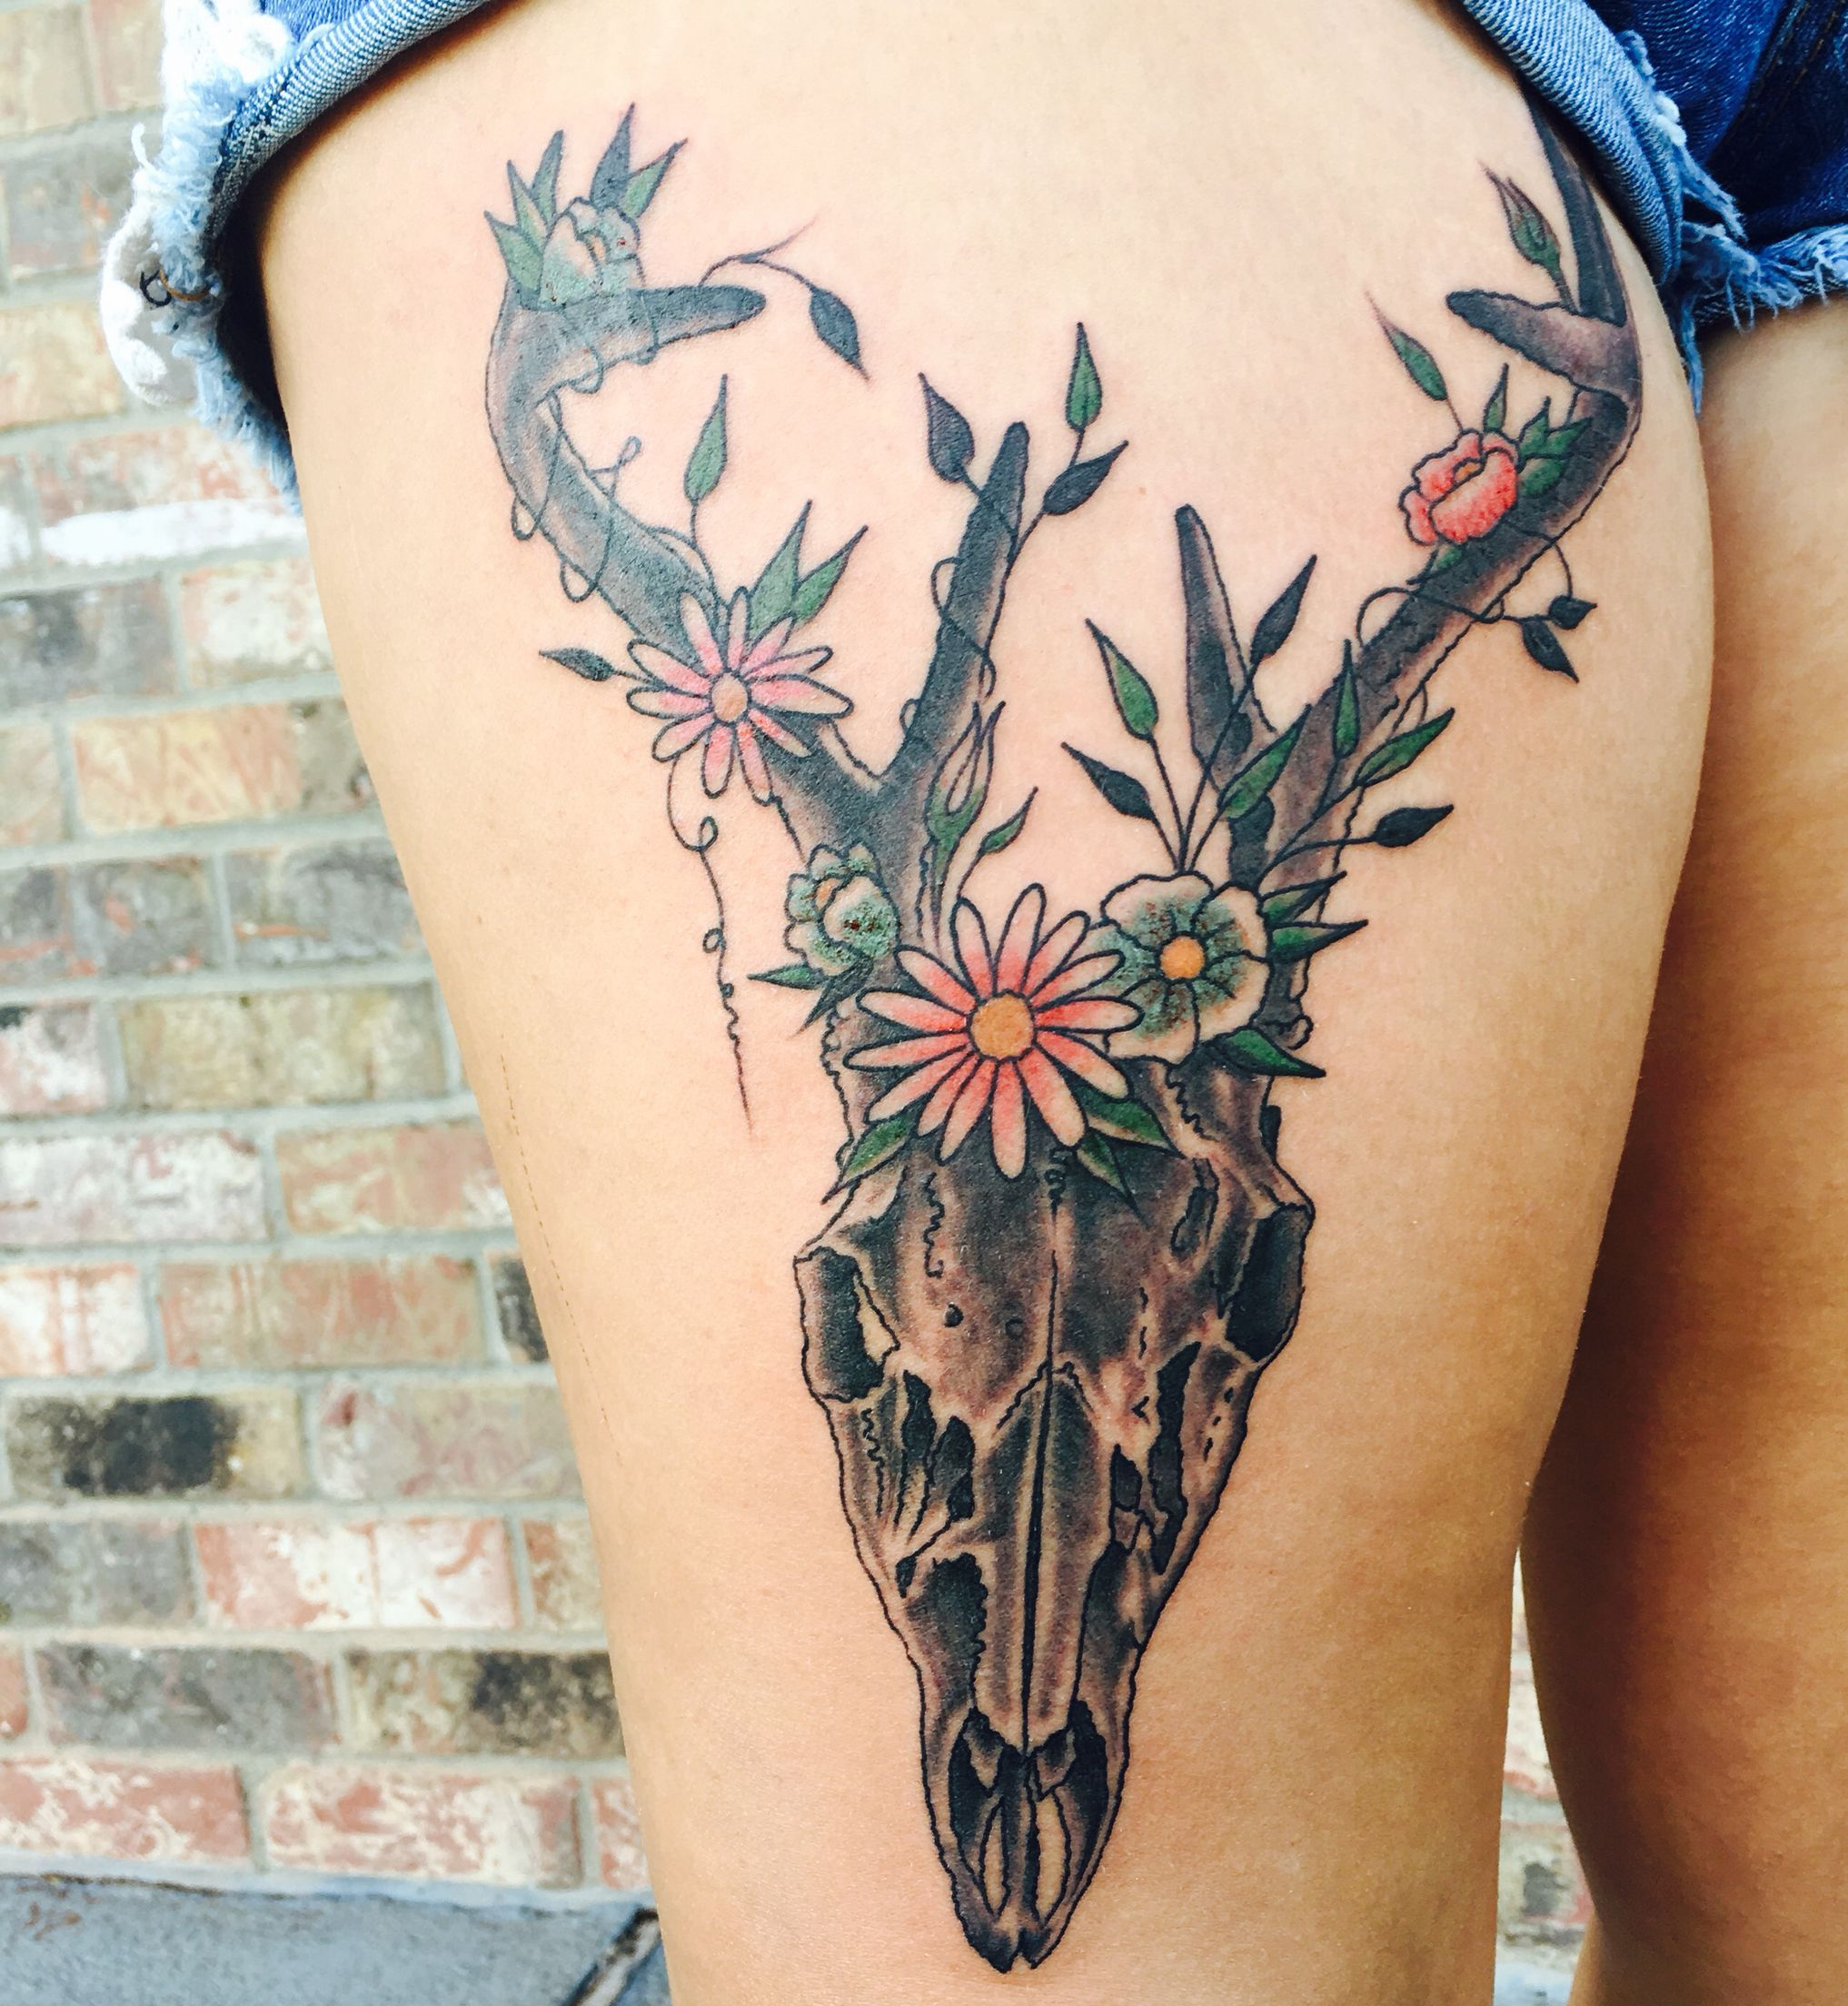 Deer Skull Tattooflowers Southern Tattoo In Texas Hunting Tattoo